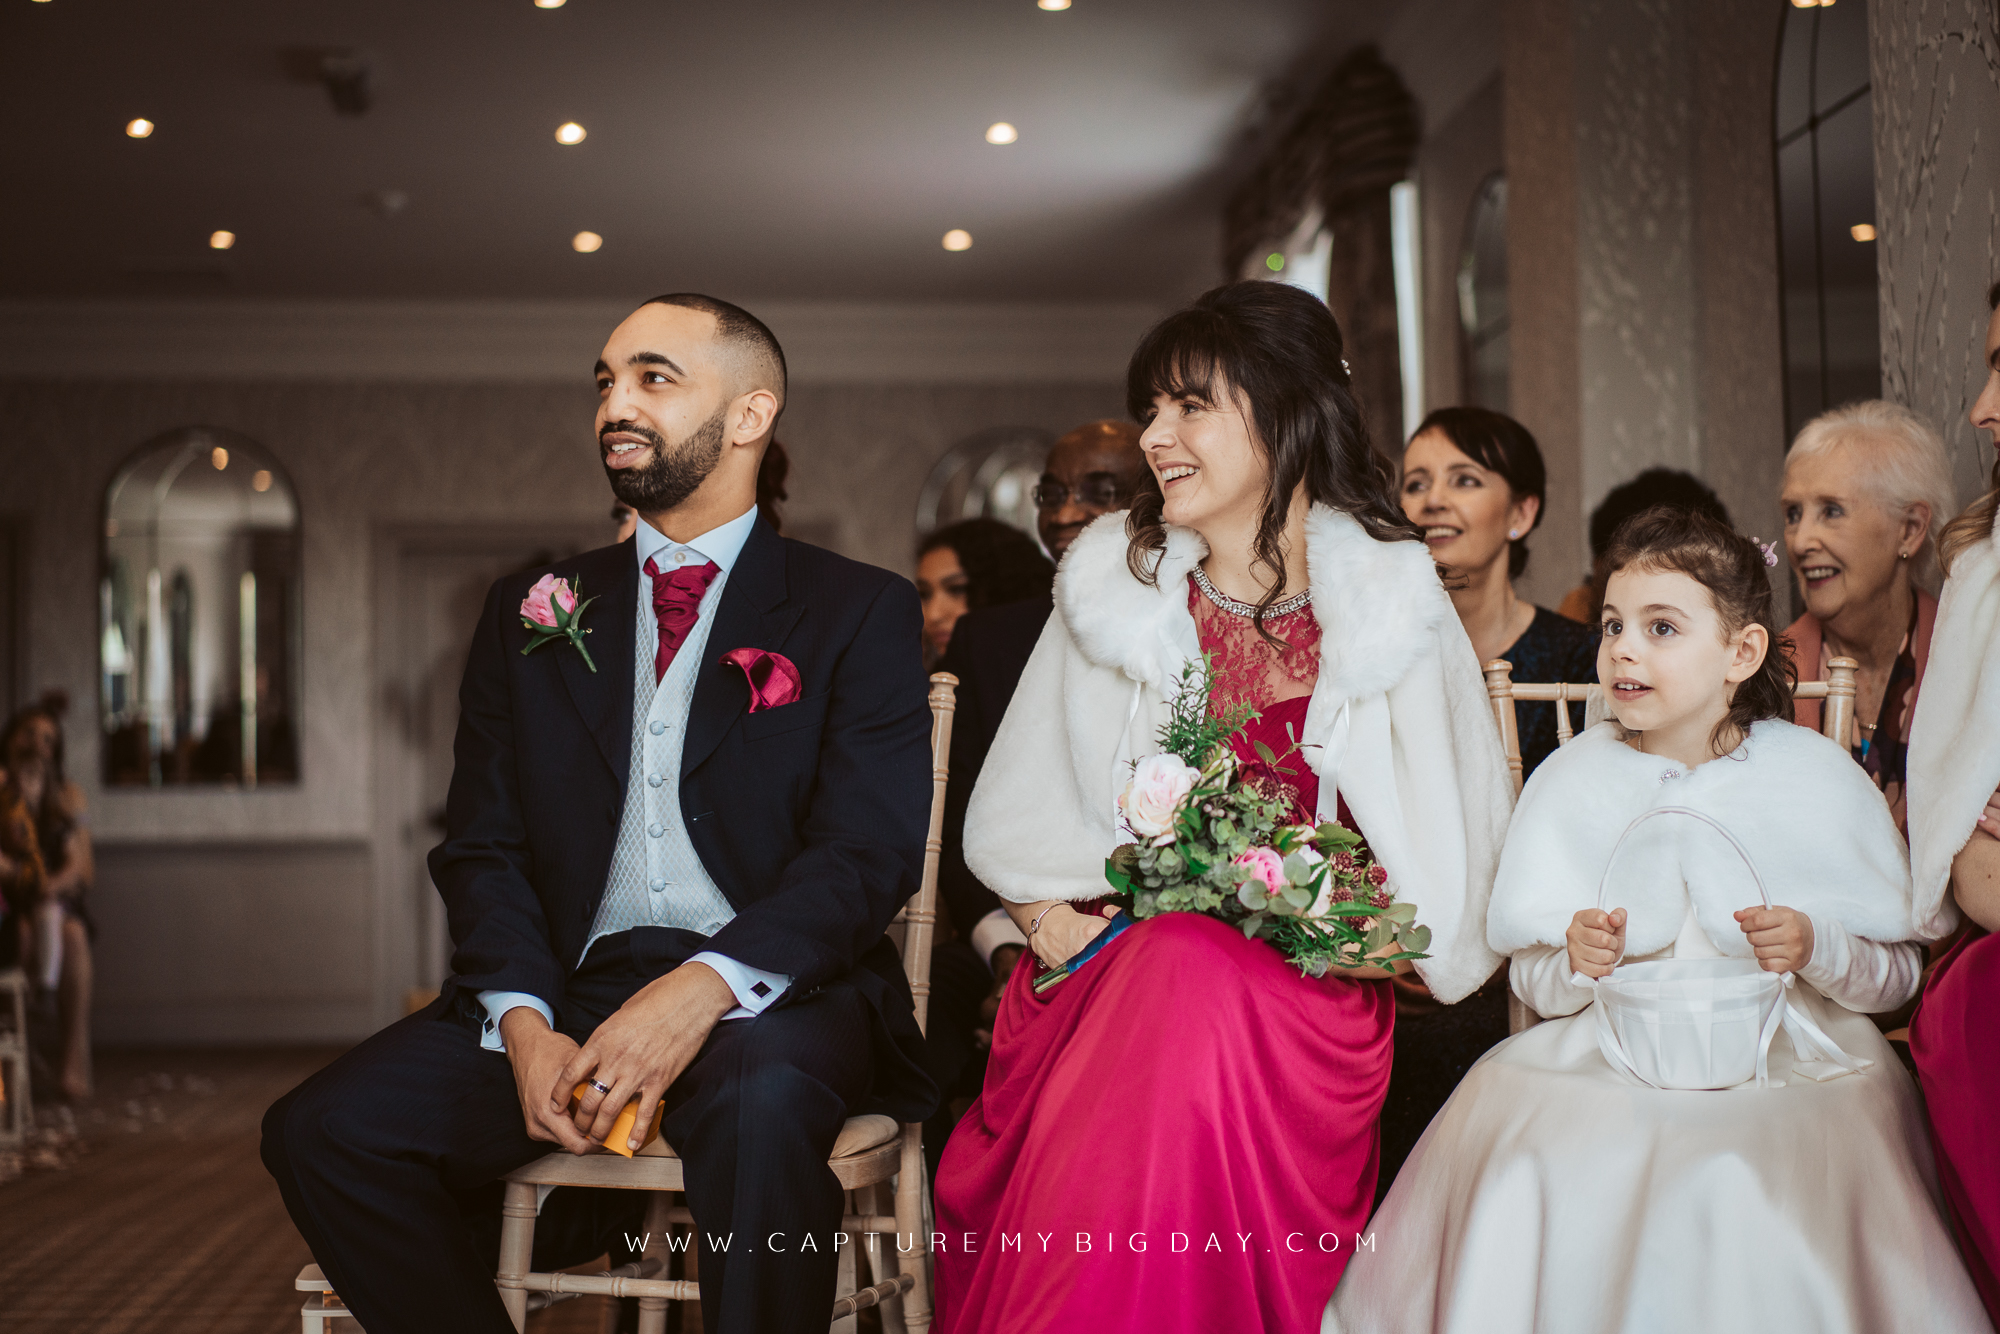 wedding guests smiling in ceremony